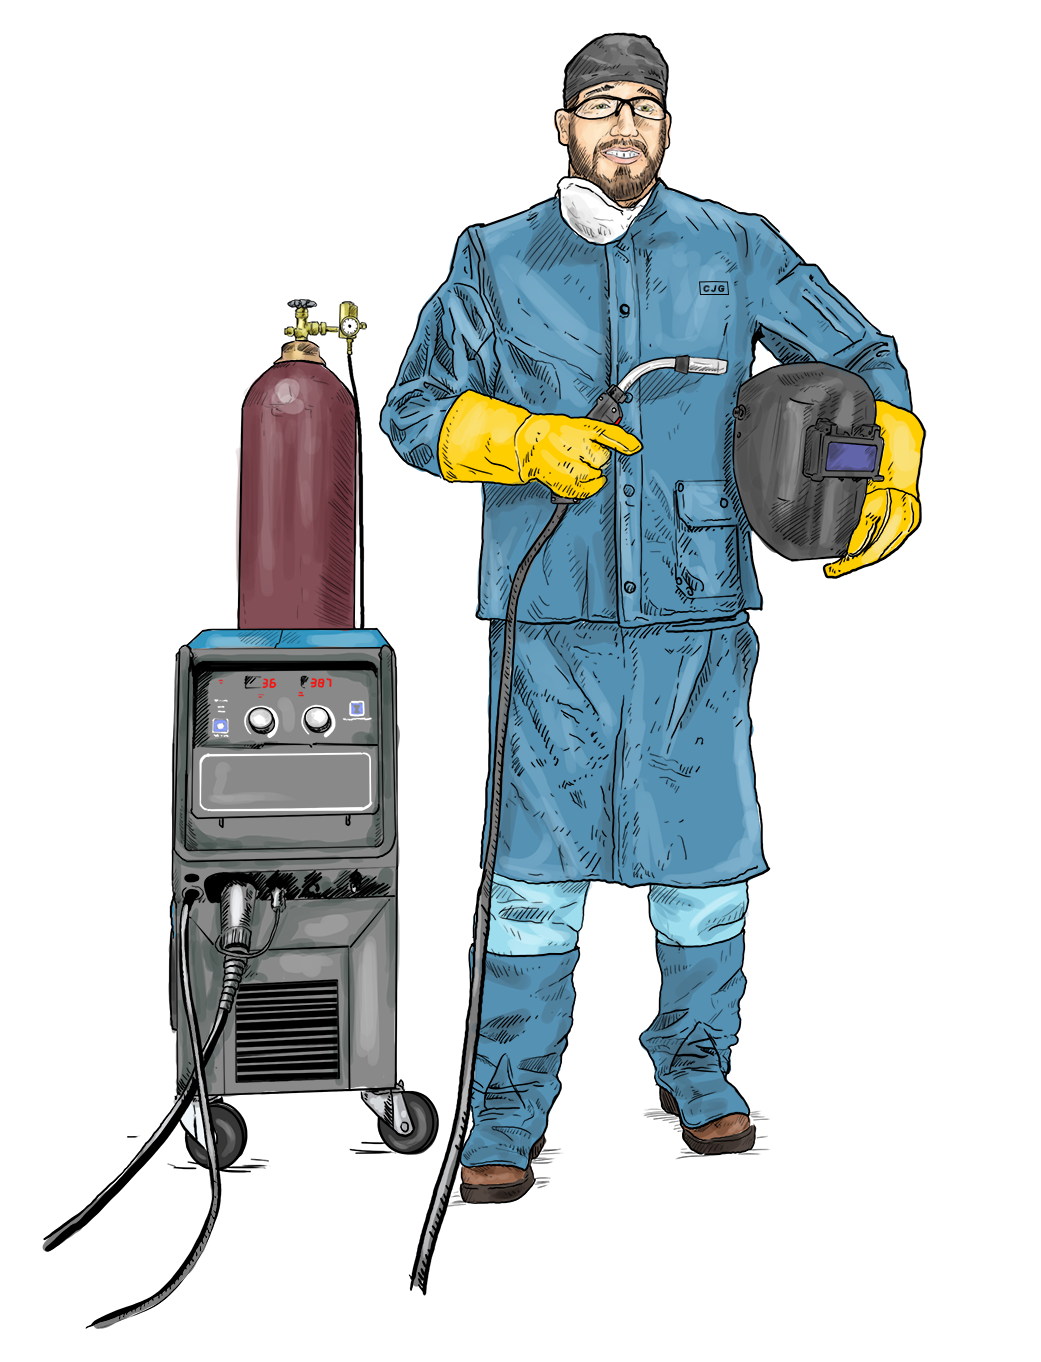 Welder_Safety_Equipment-PPE